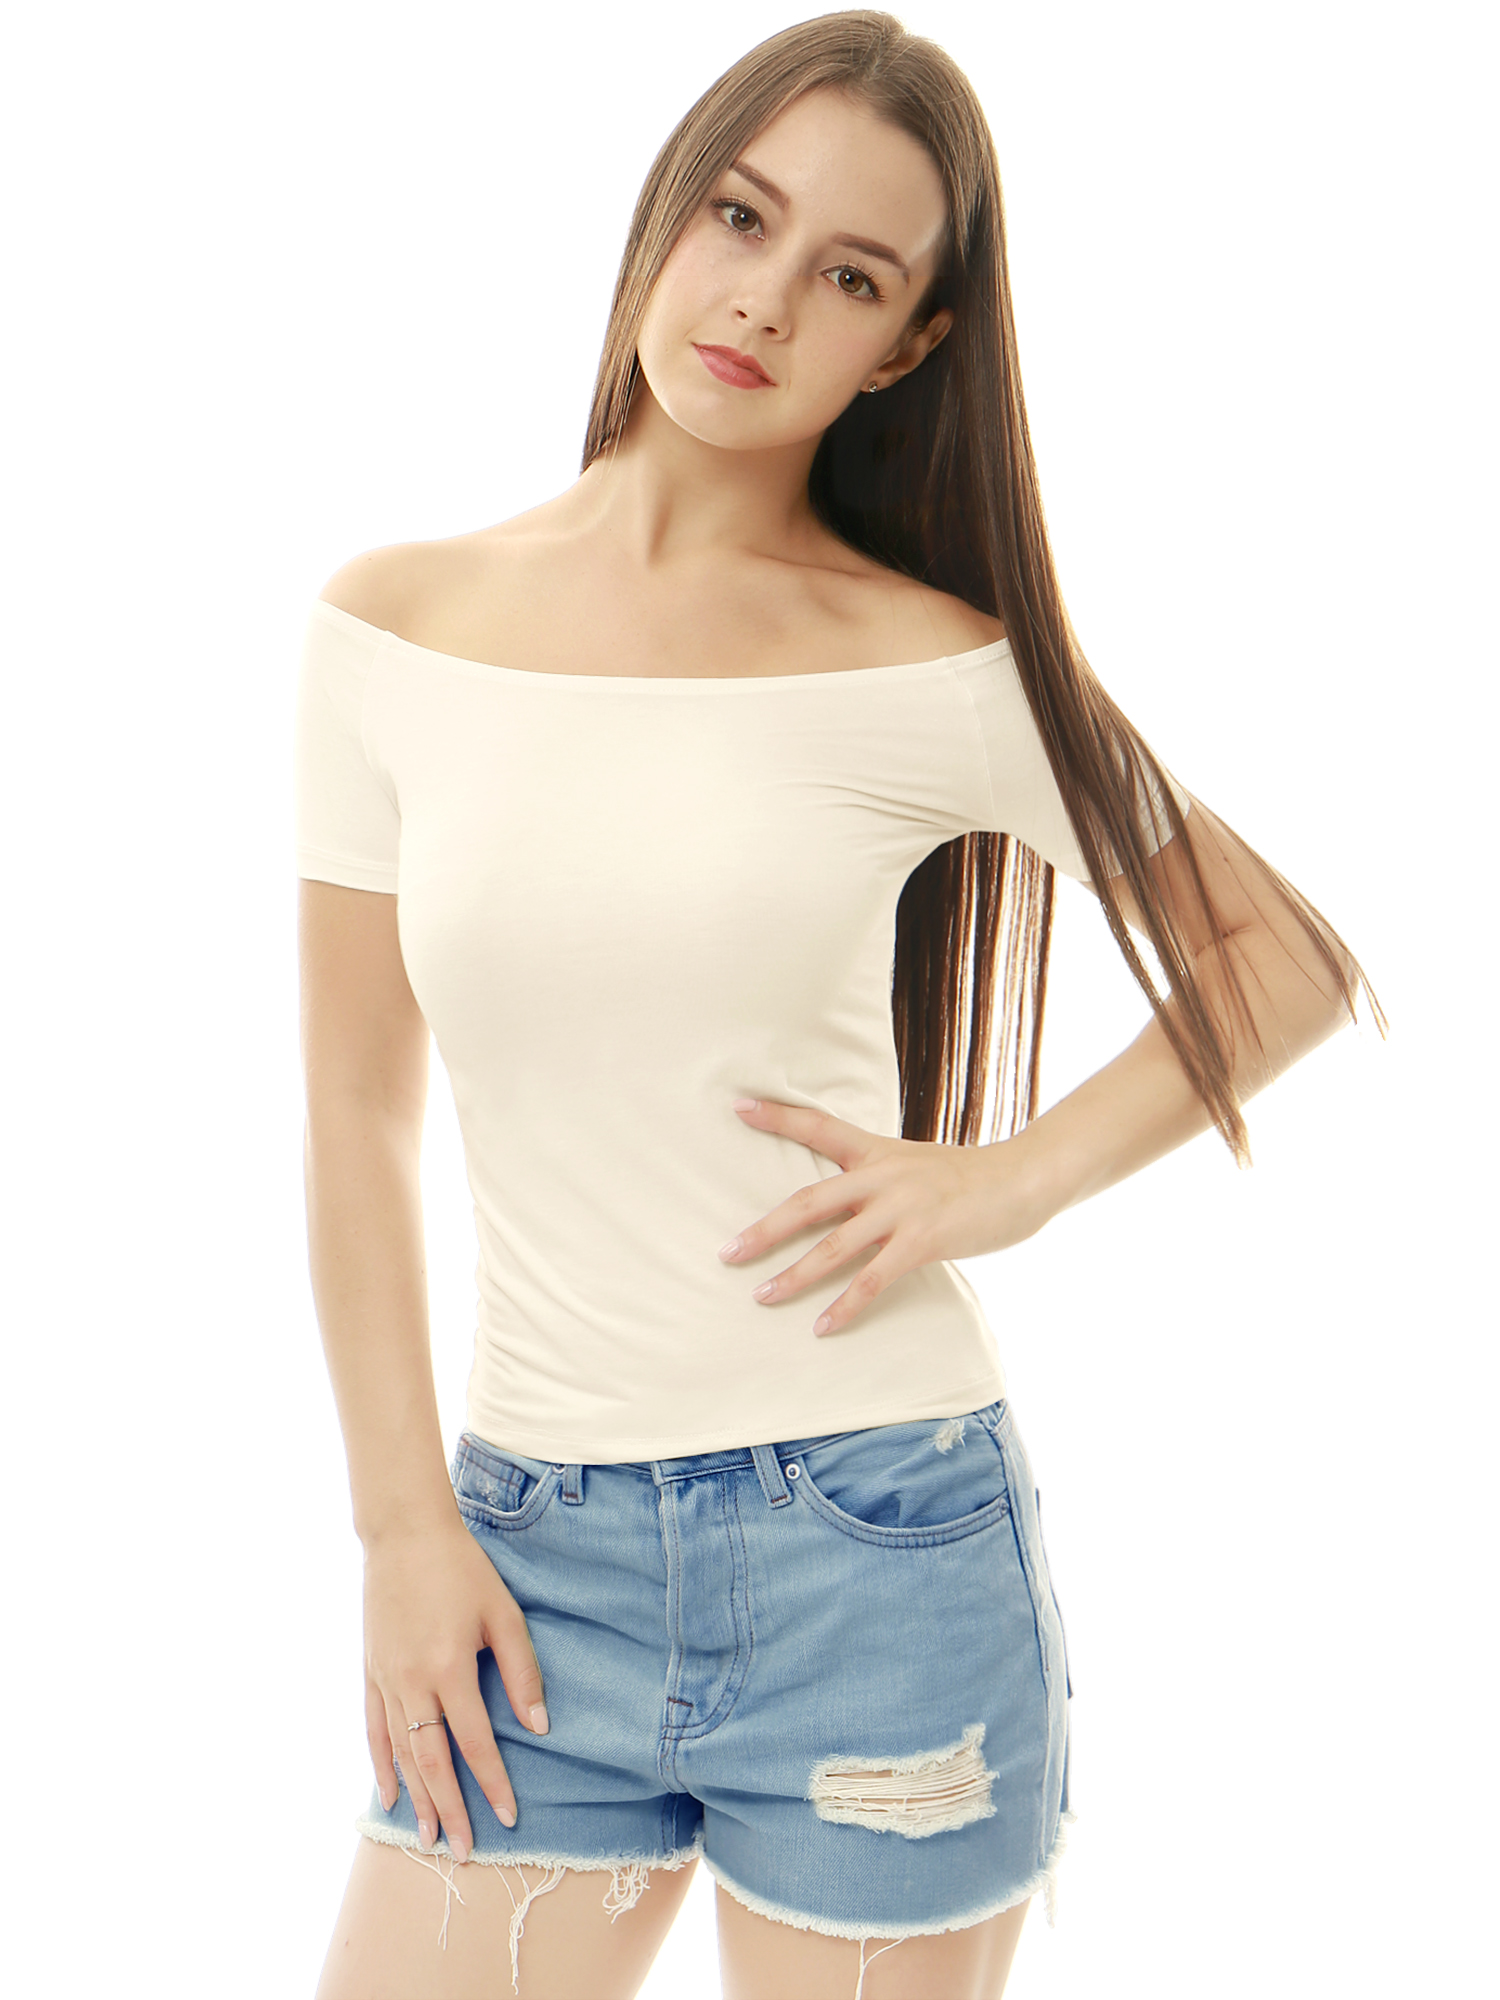 Women Short Sleeves Slim Fit Off the Shoulder Top White XL